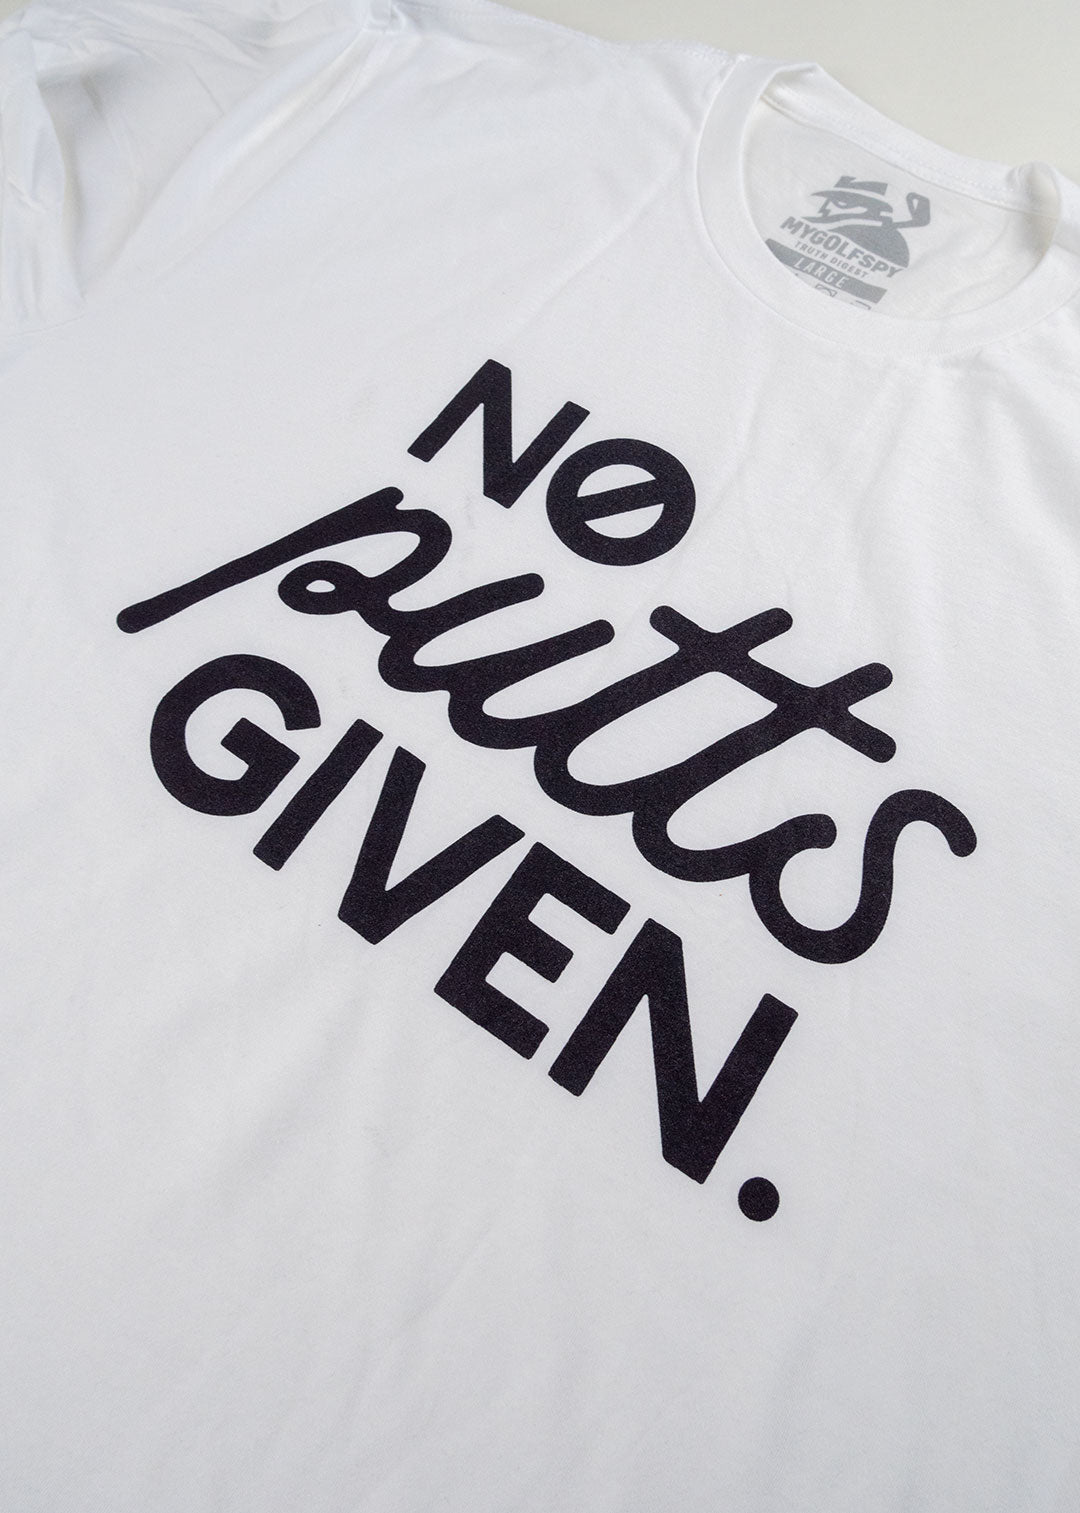 No Putts Given Tee - White